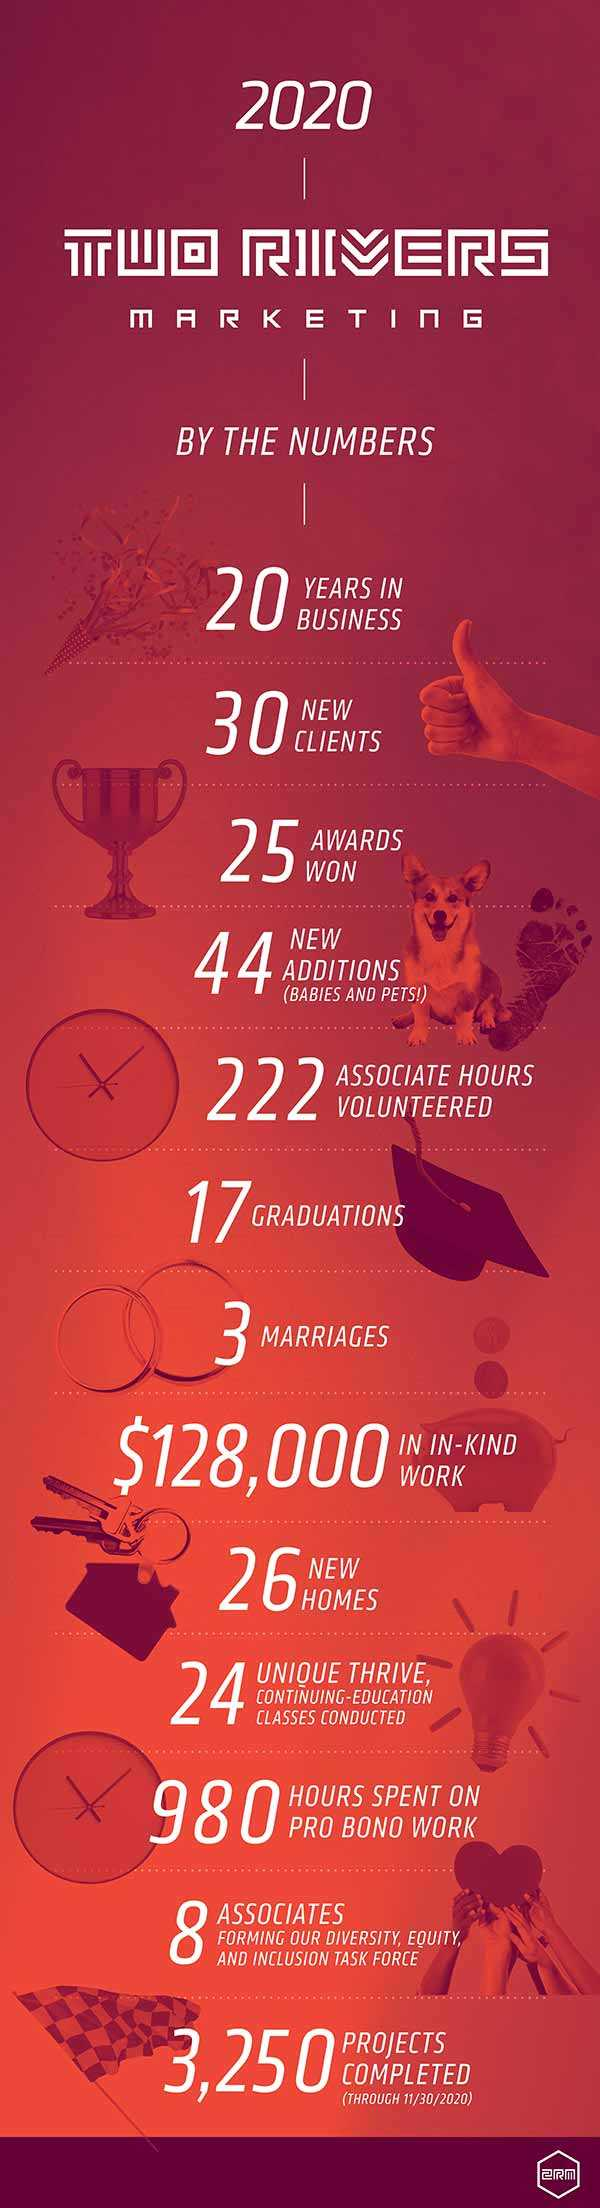 Two Rivers Marketing 2020 Infographic